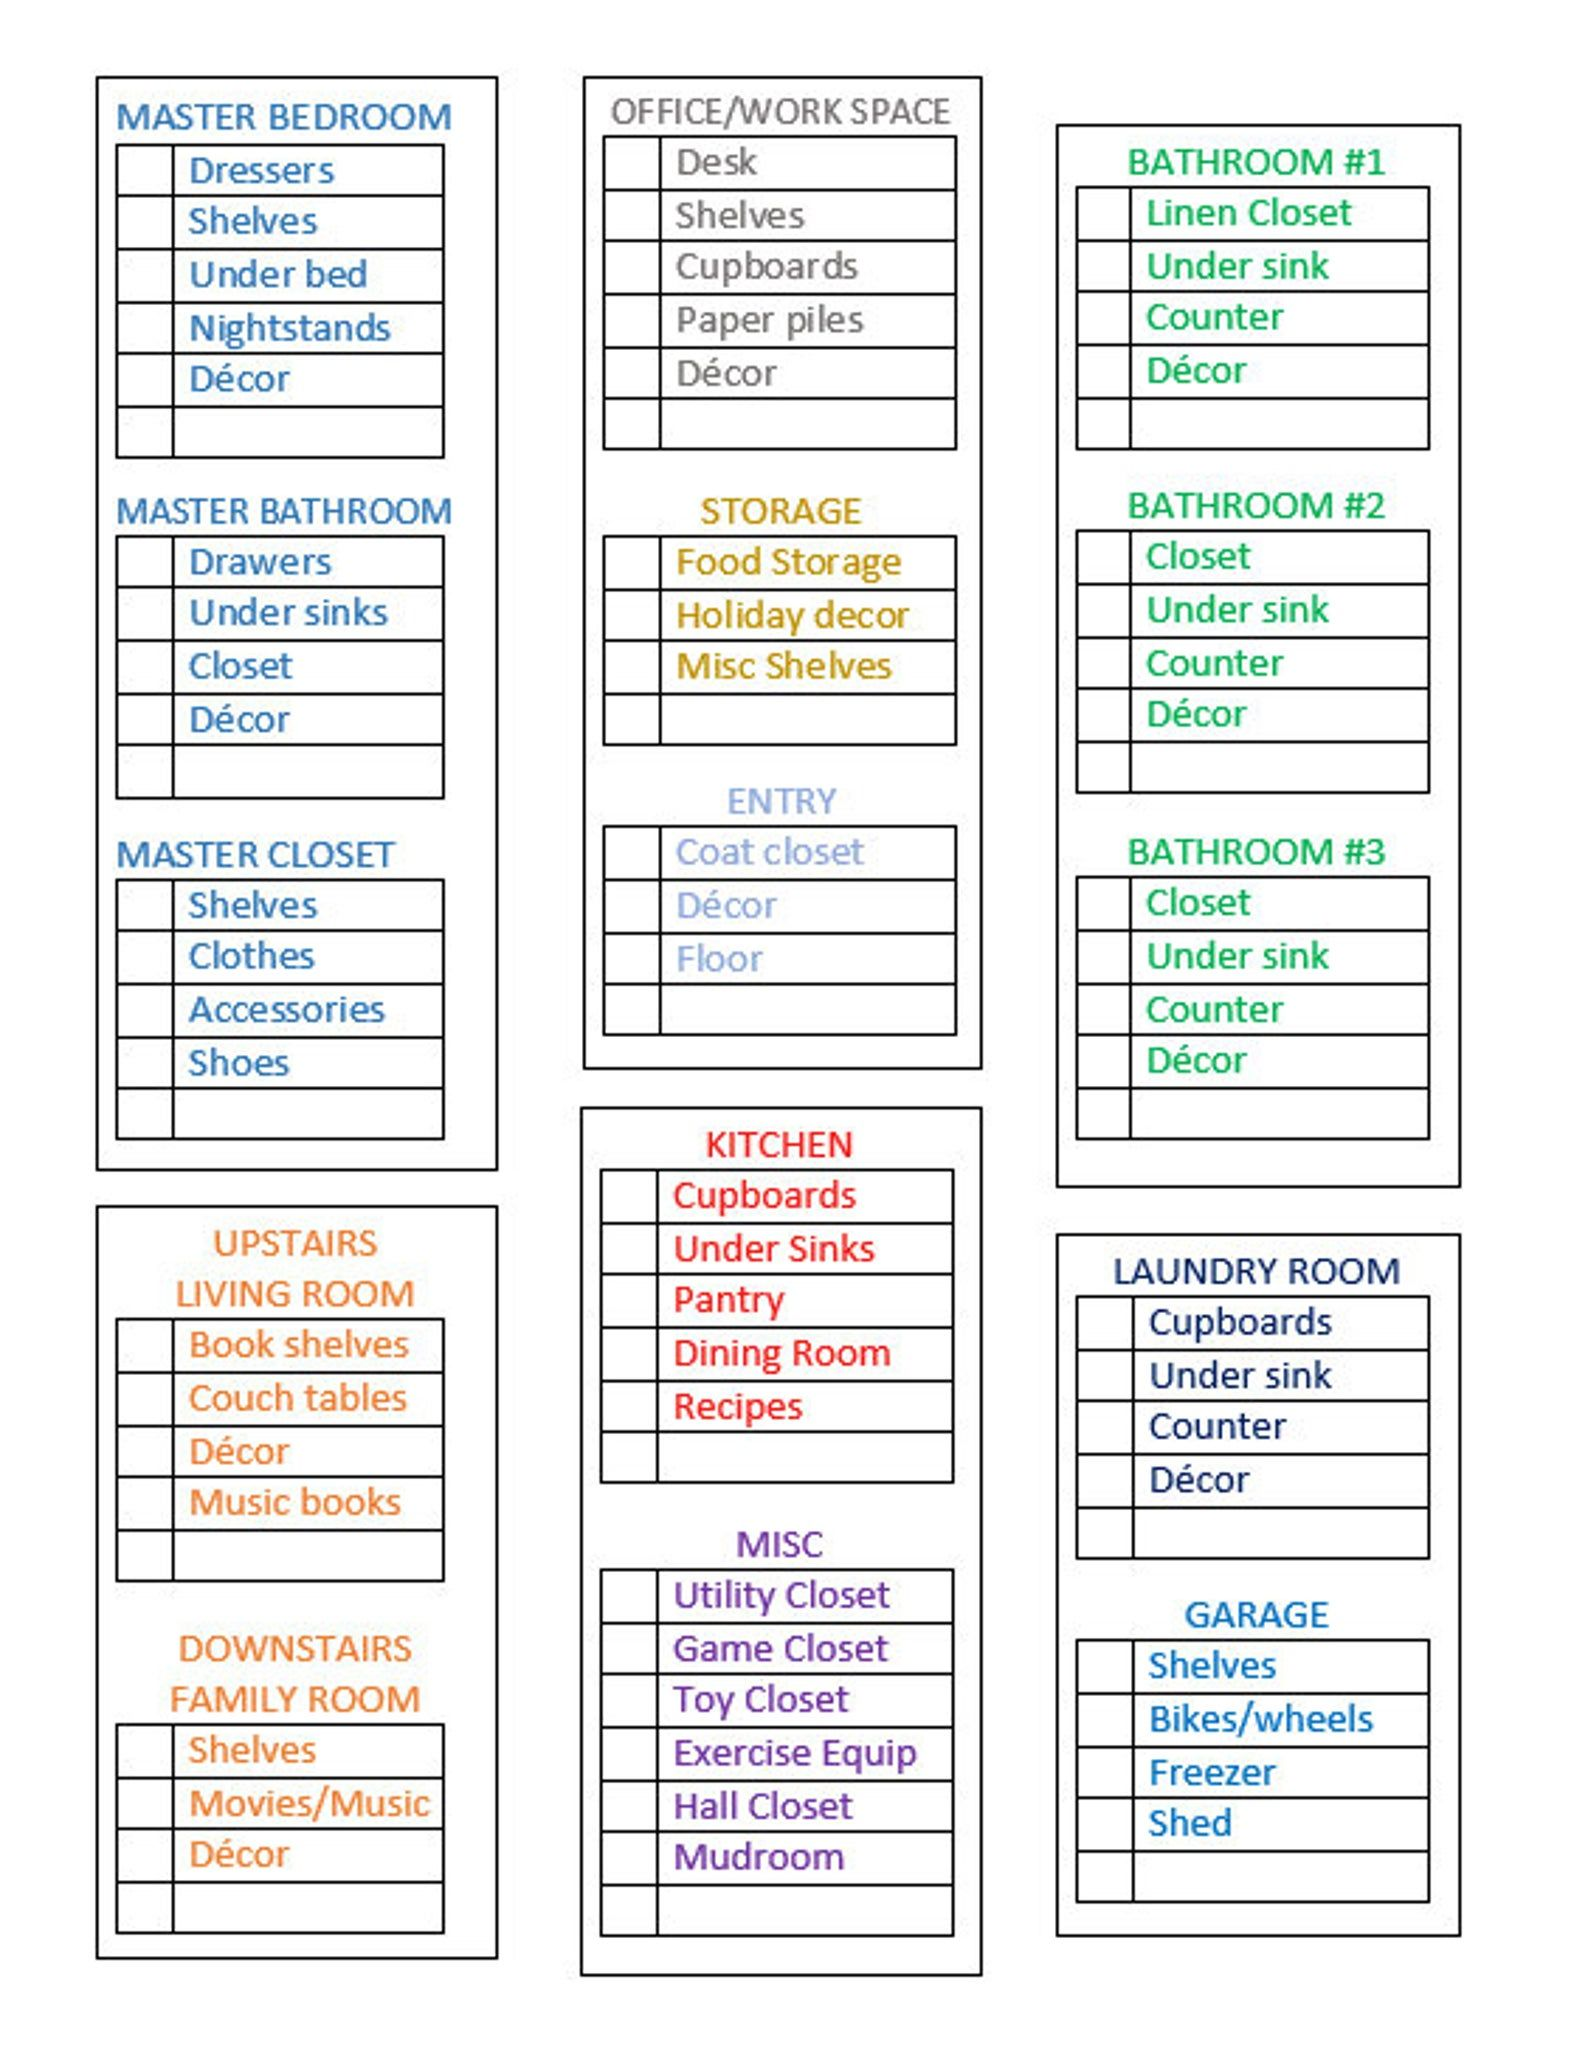 Declutter Home Clean List Organizing Instant Download With Tips And Cleaning Organization In 2020 Declutter Home Declutter Declutter Challenge